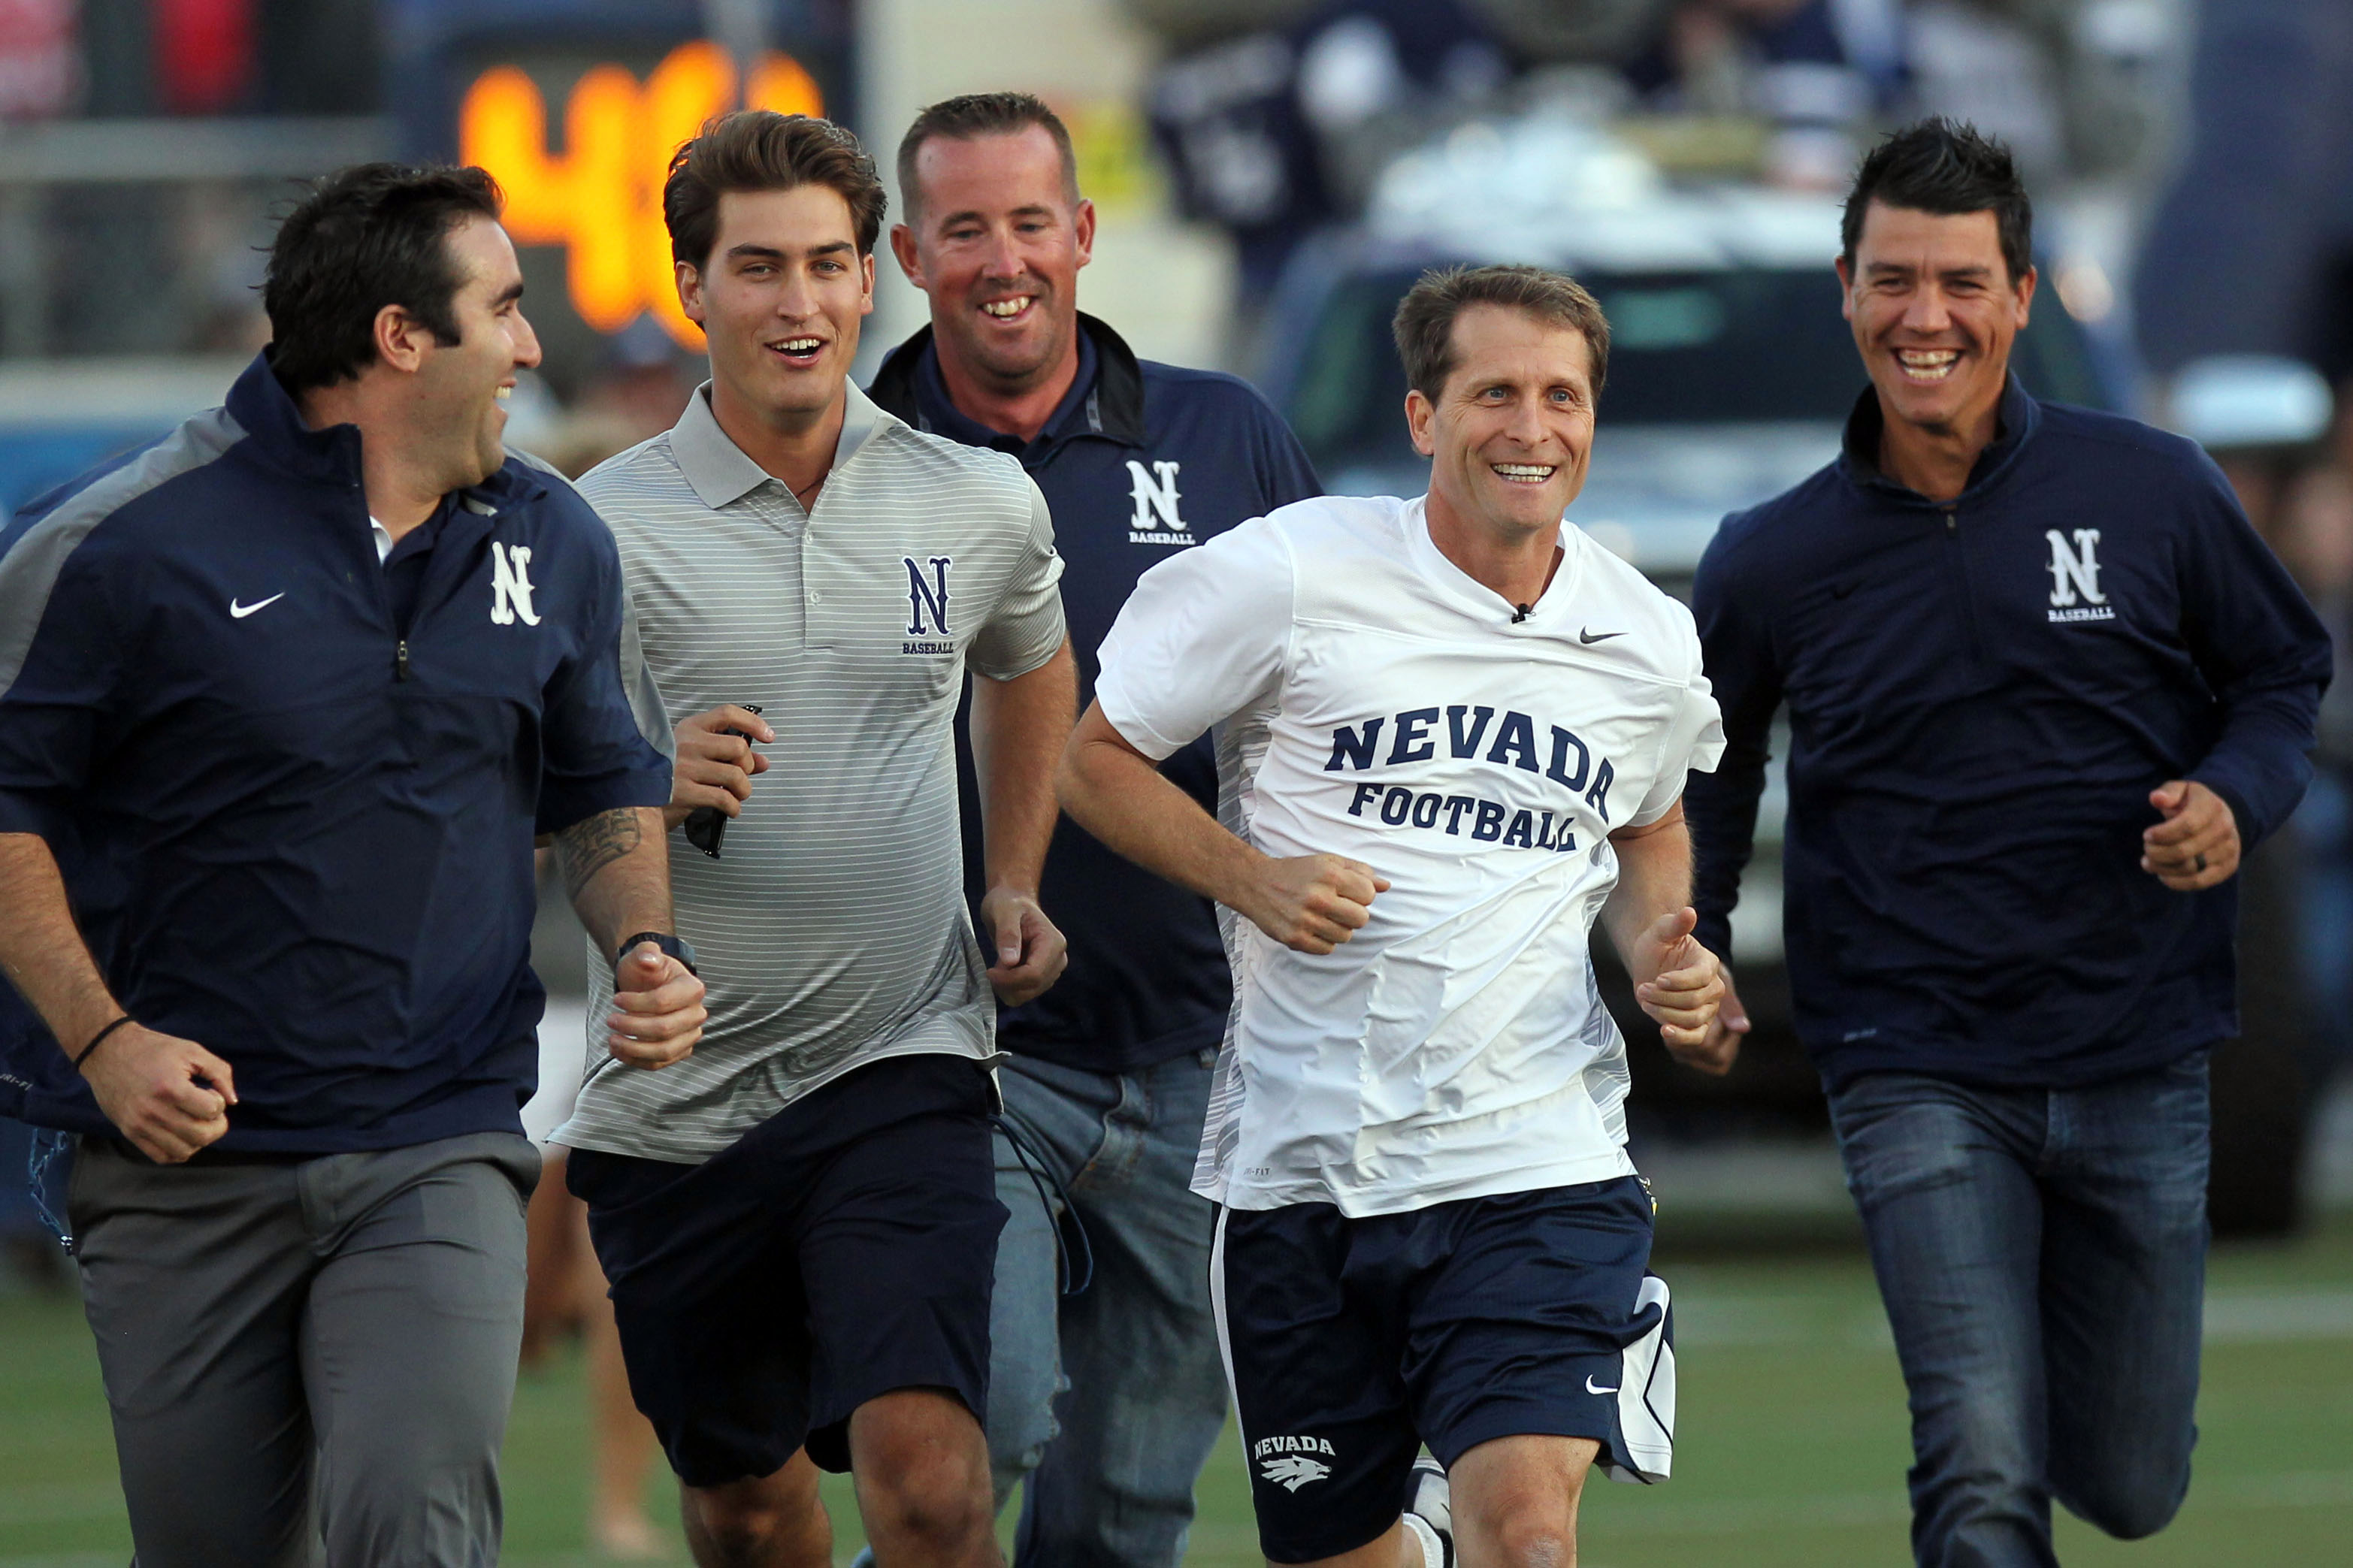 Eric Musselman (In white) still has a very strong recruiting class despite Cook decommiting